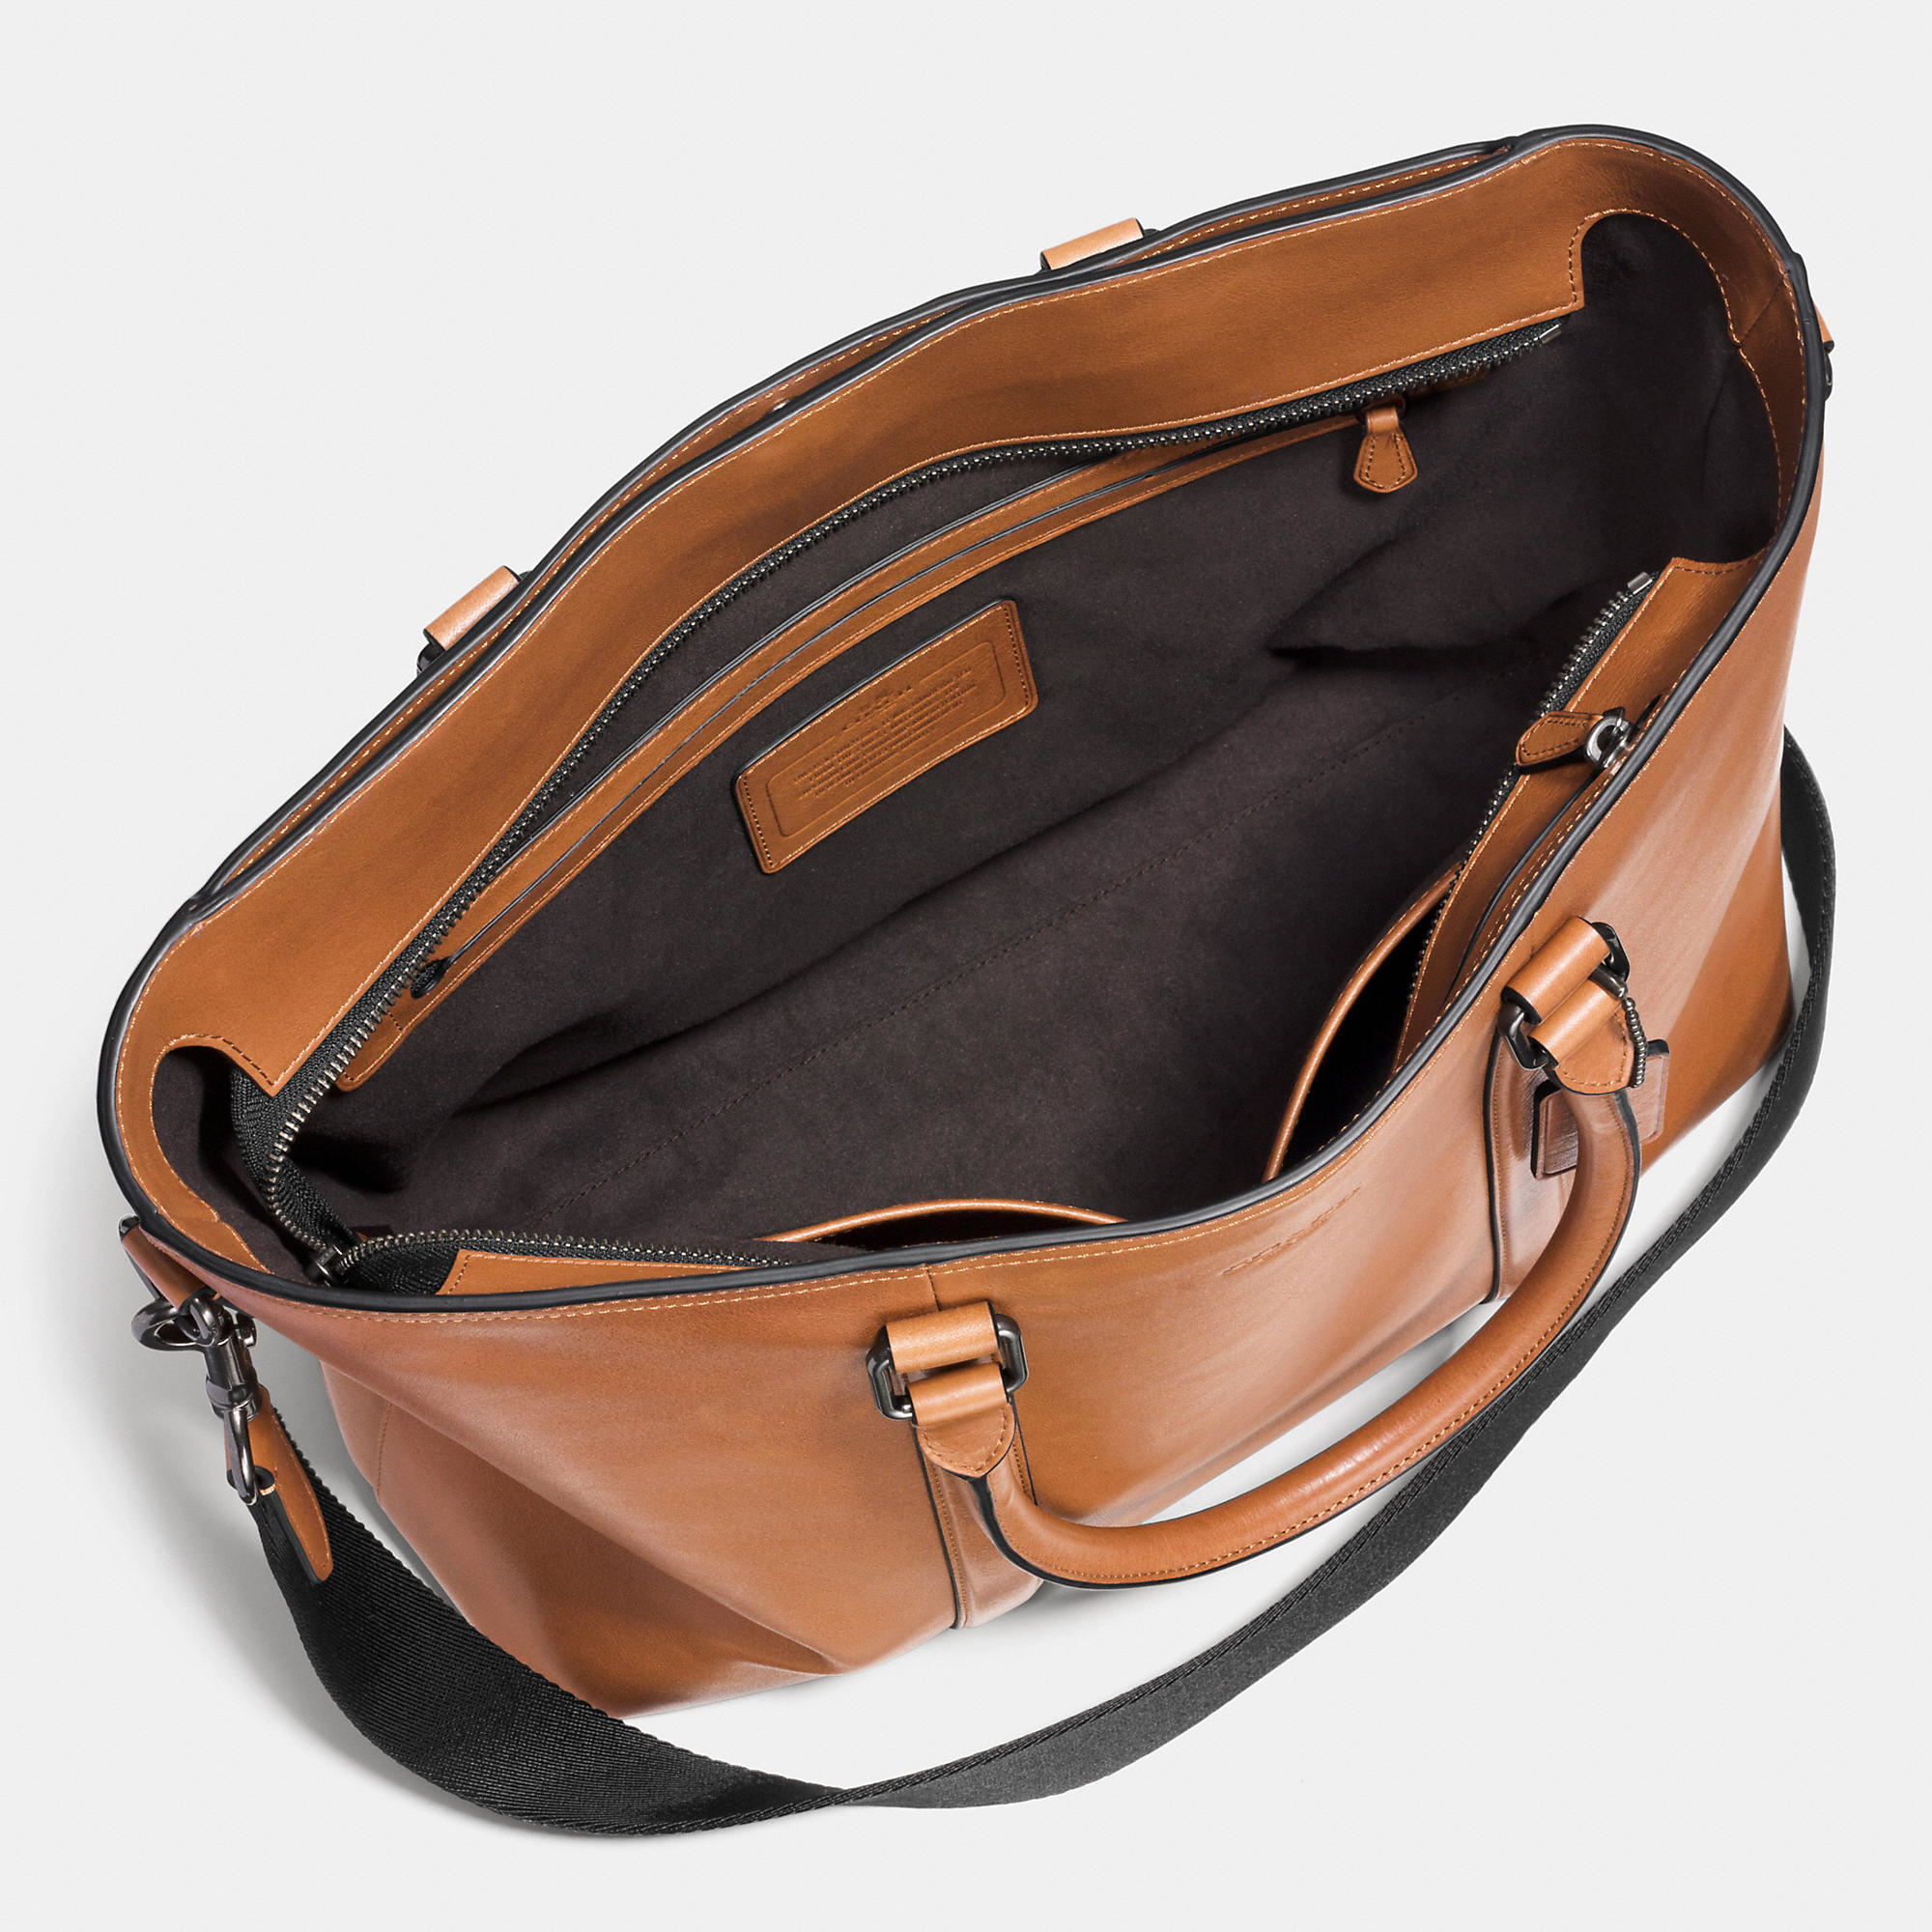 138adc97c1aa Lyst - COACH Metropolitan Tote In Sport Calf Leather in Brown for Men